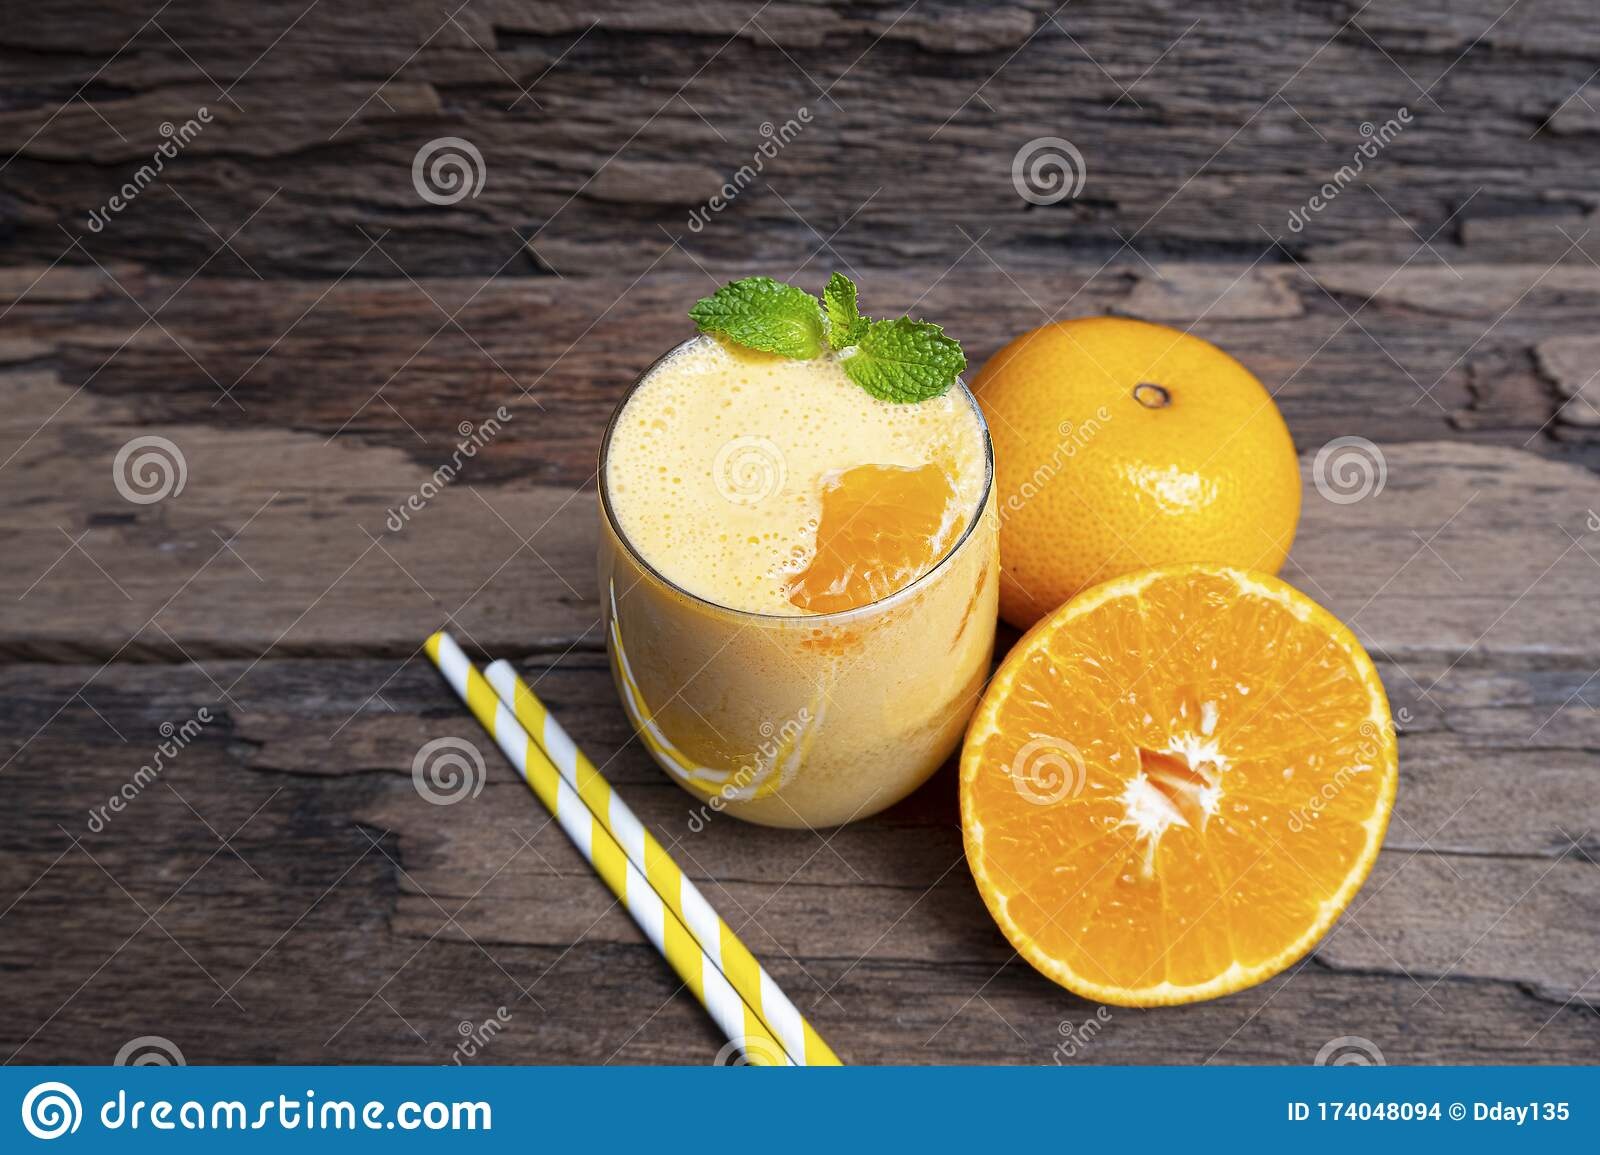 Orange Juice Fruit Smoothies Yogurt Drink Yellow Healthy Delicious Taste In A Glass Slush For Weight Loss Stock Photo Image Of Detox Cocktail 174048094